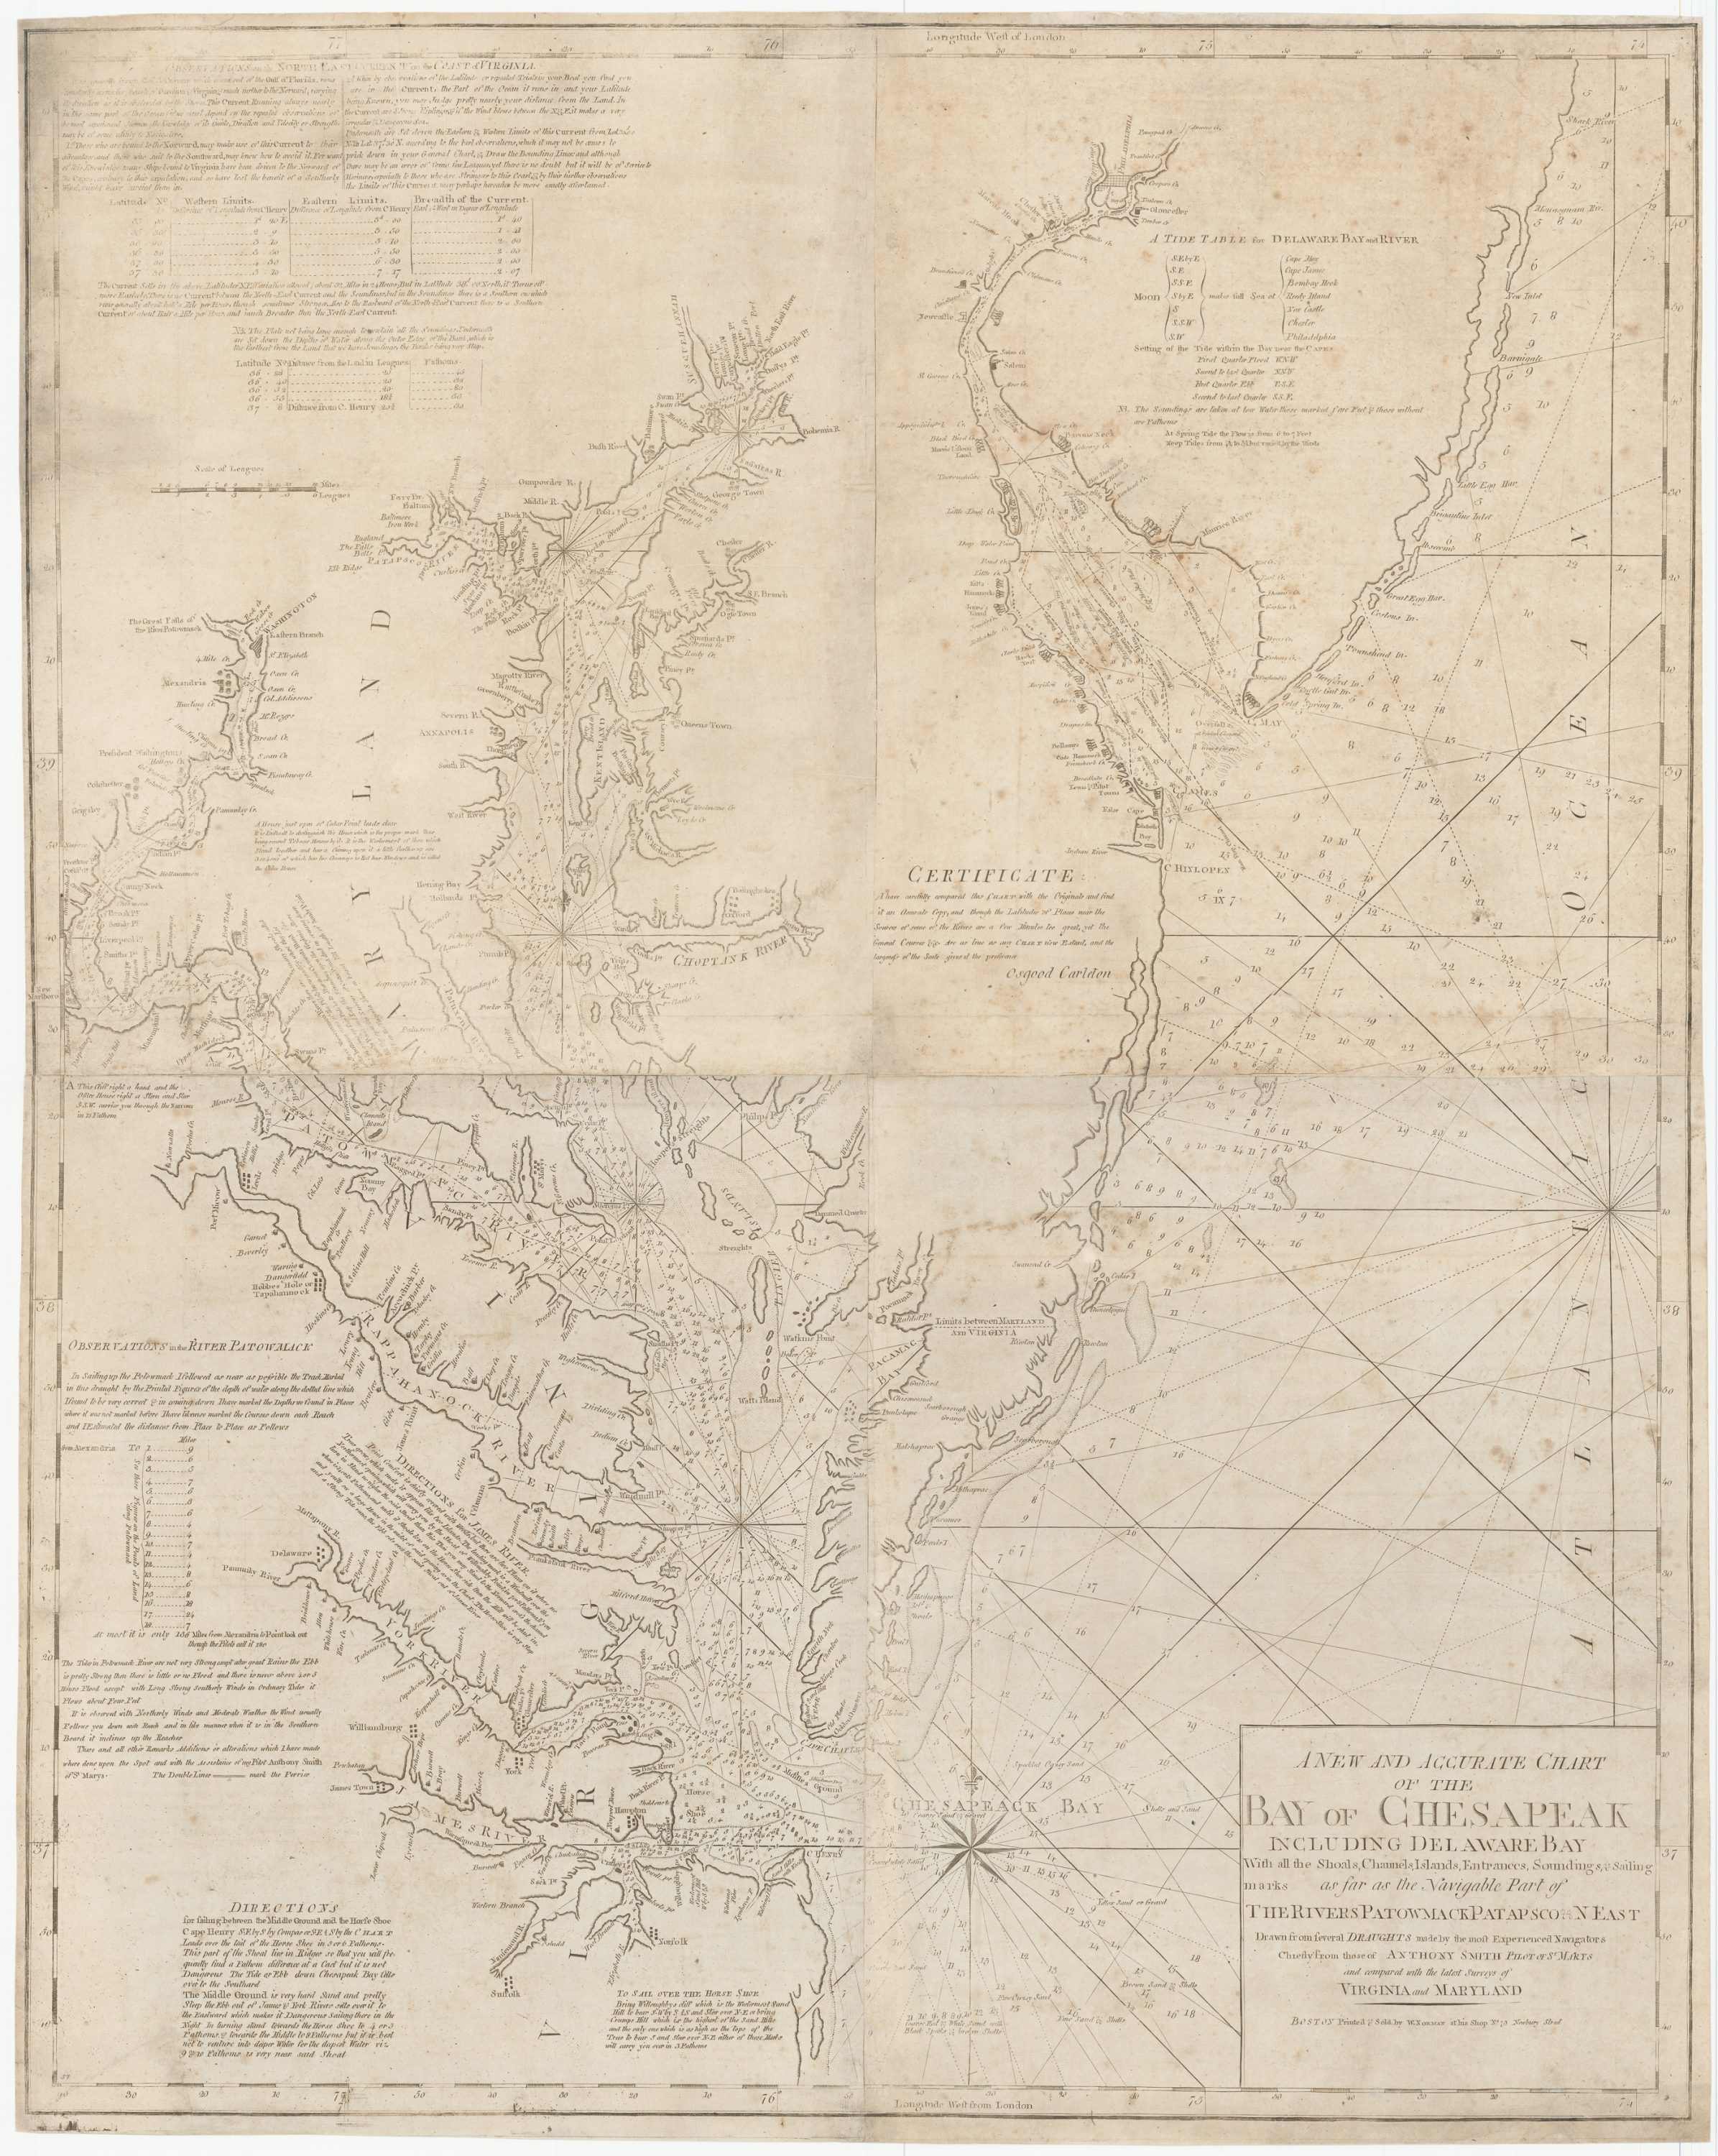 Rare 1794 chart of Chesapeake Bay from Normans American Pilot